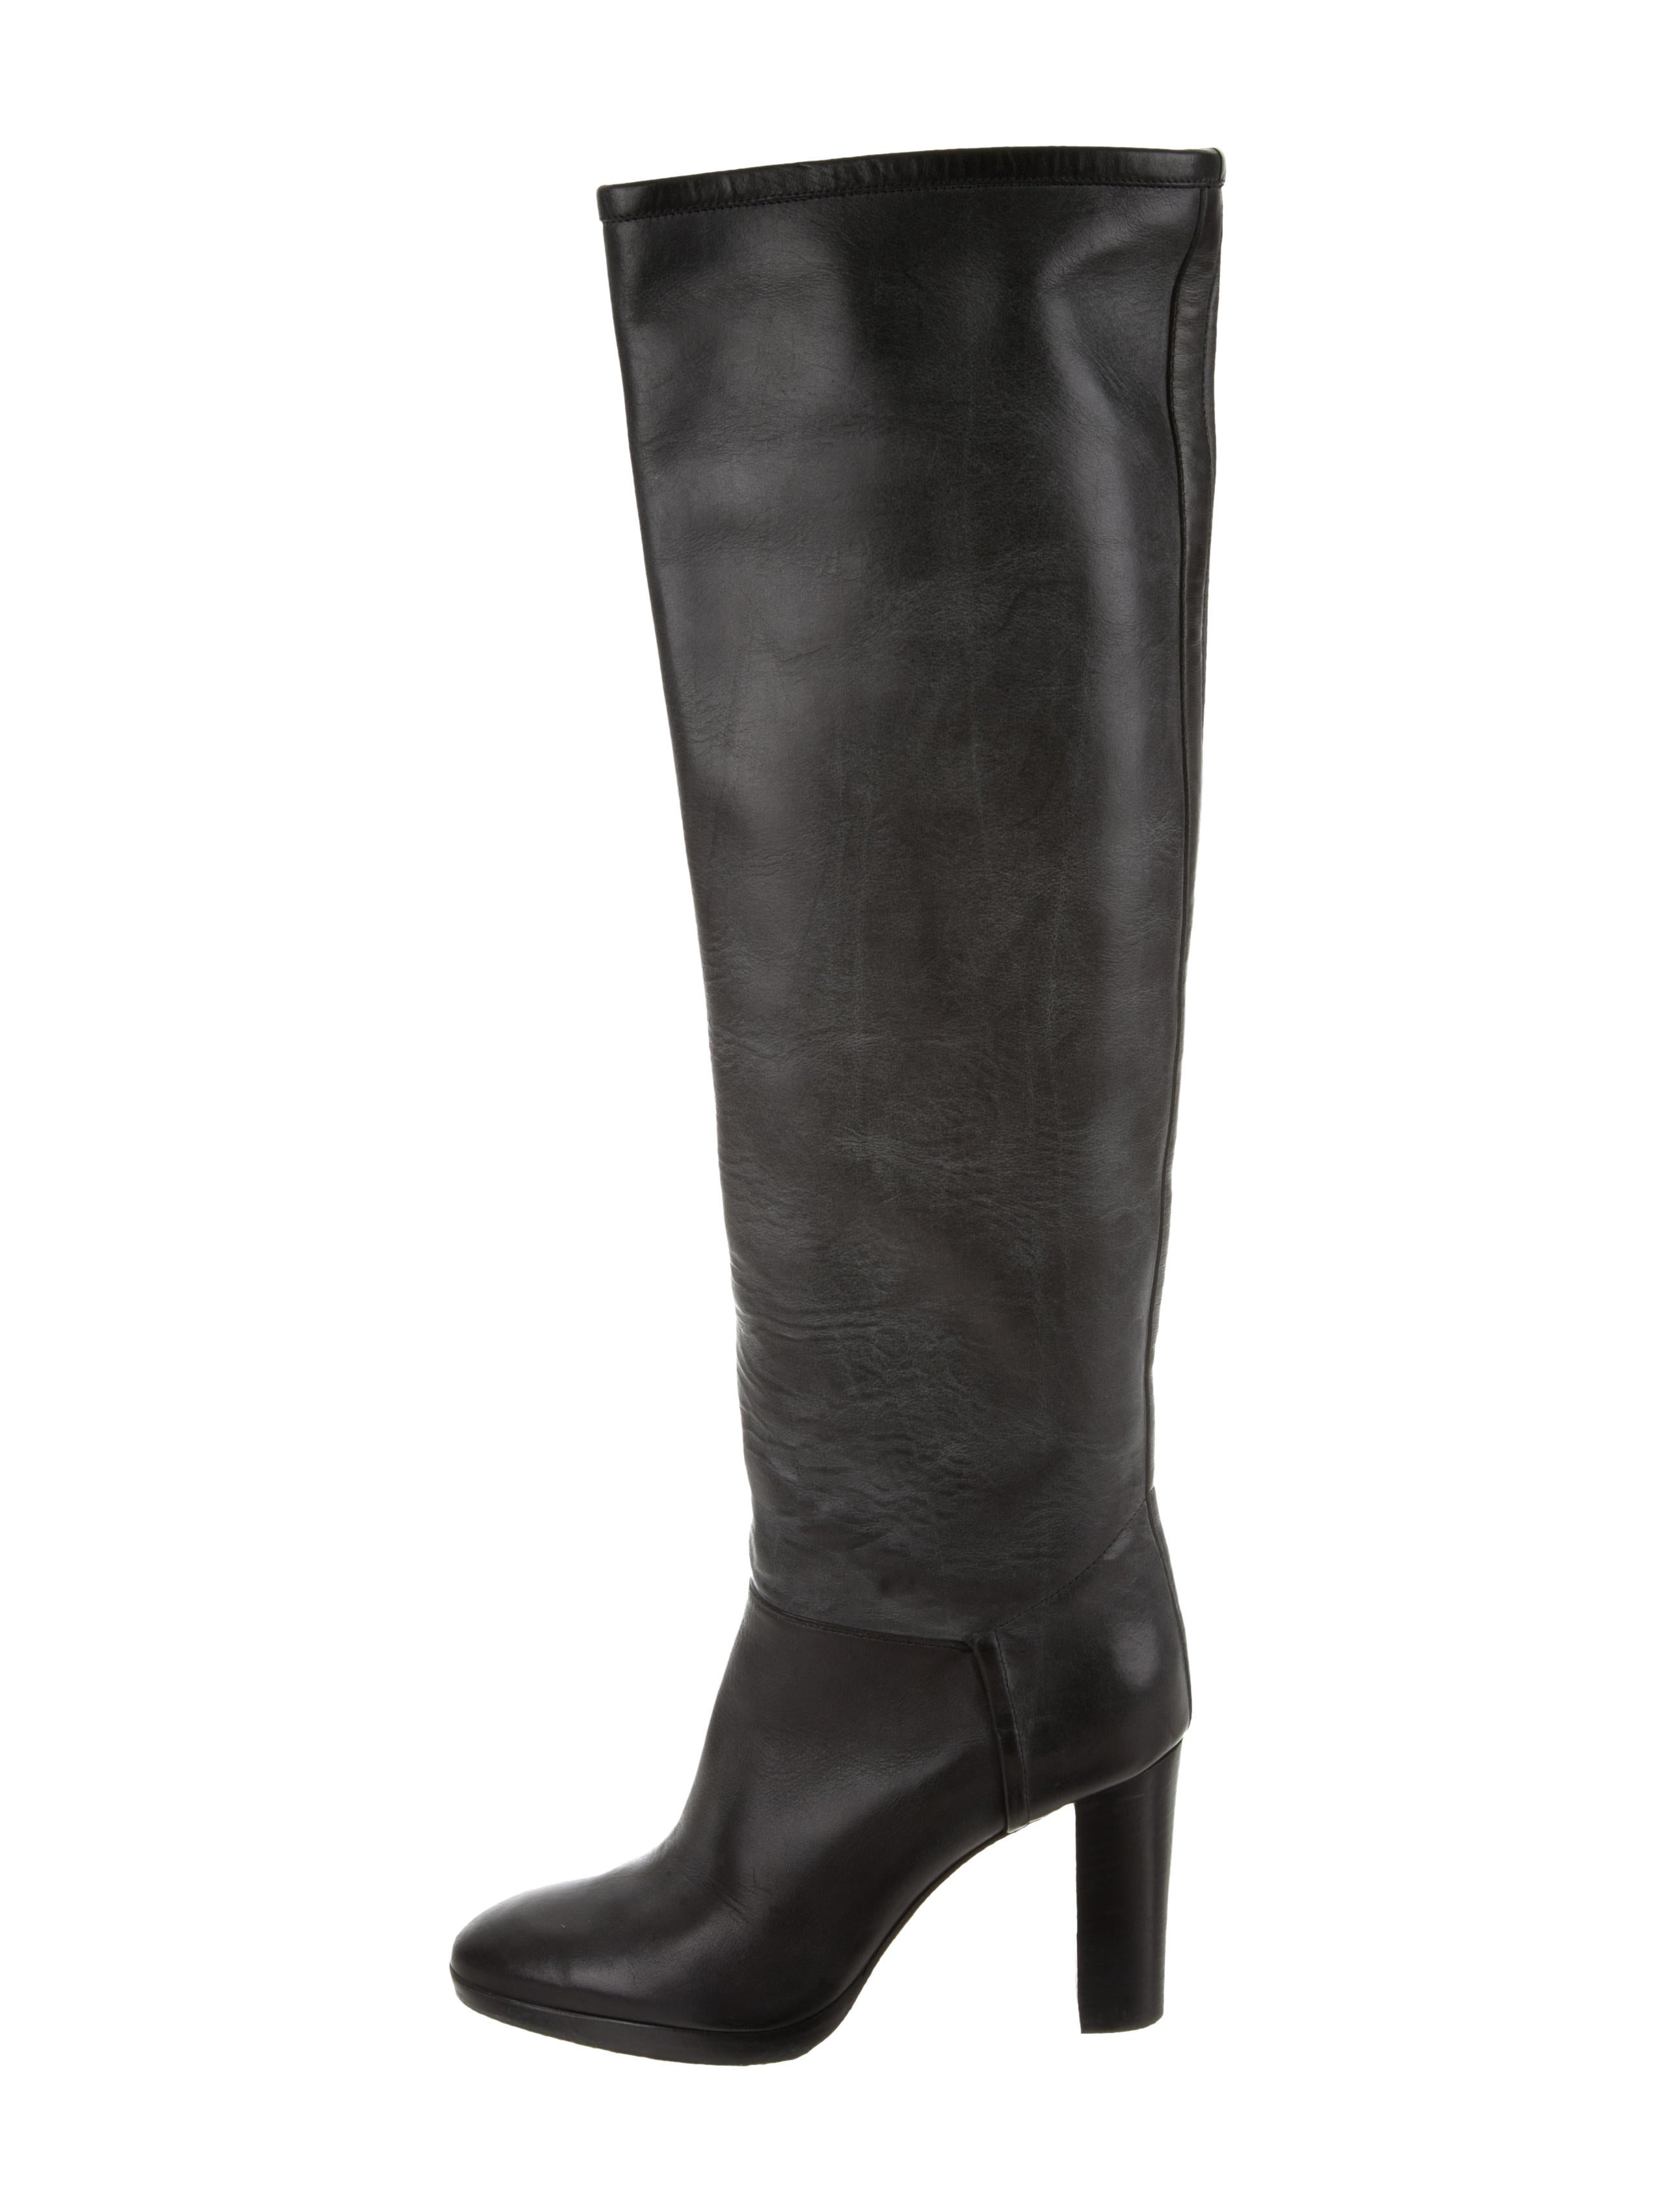 Loro Piana Leather Over-The-Knee Boots clearance genuine official online discount professional outlet new free shipping under $60 hnDoeJ